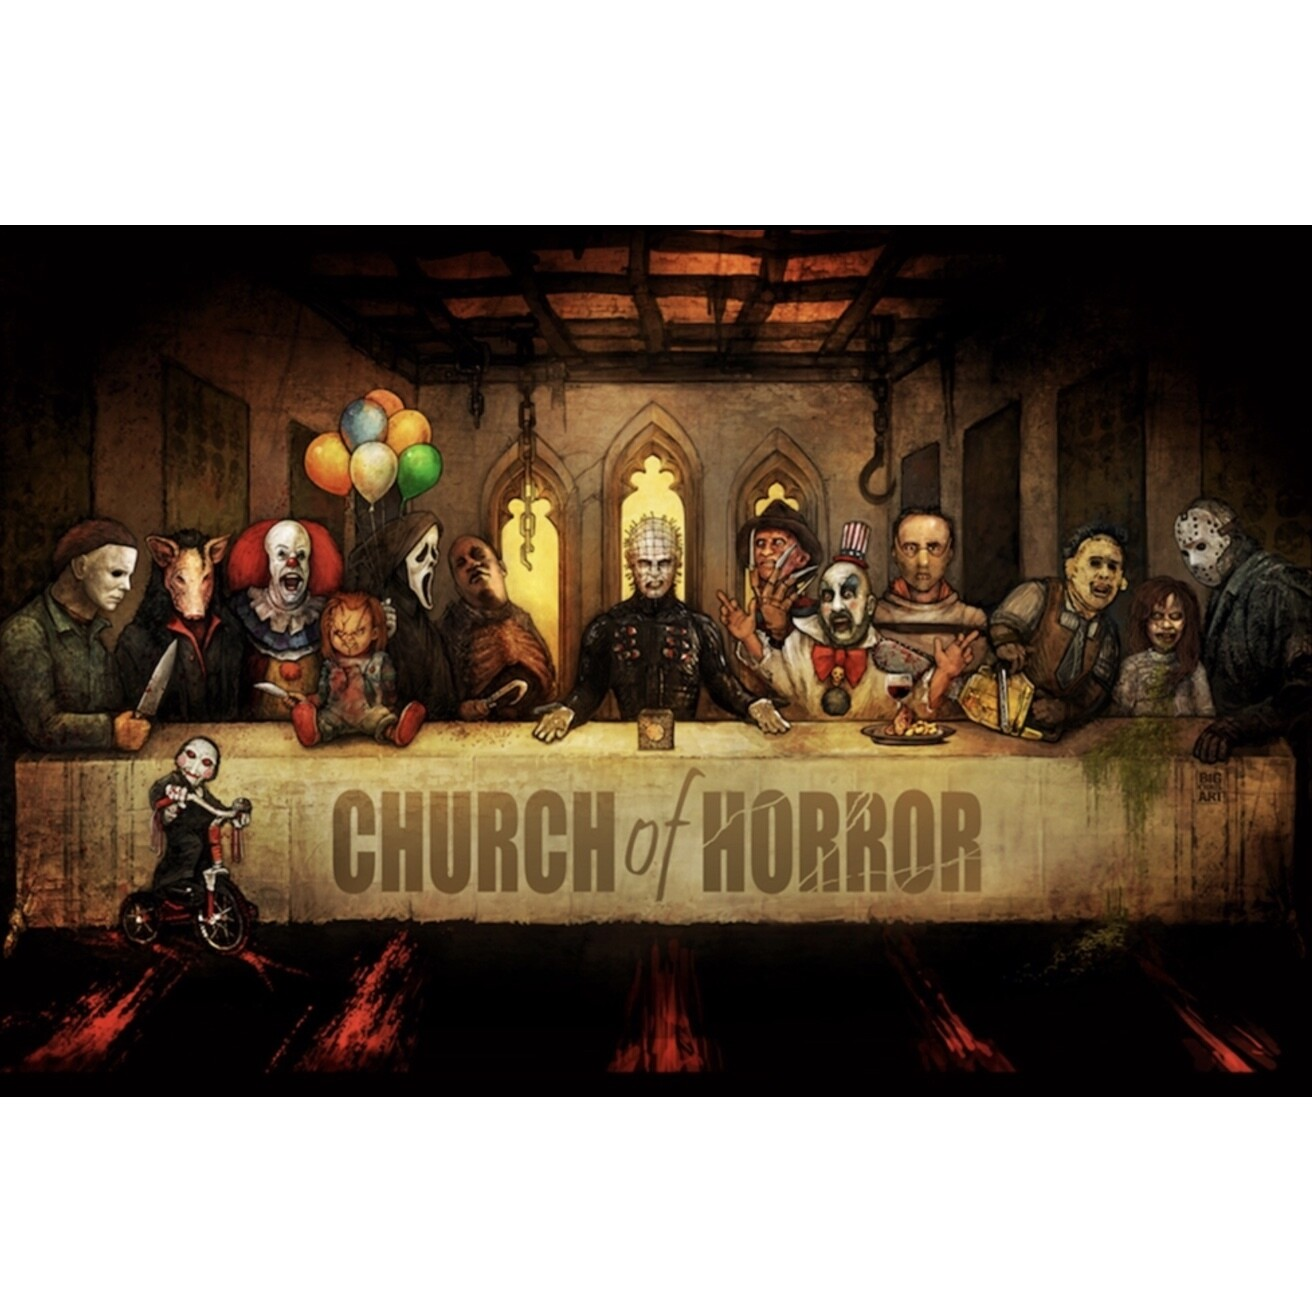 CHURCH OF HORROR POSTER